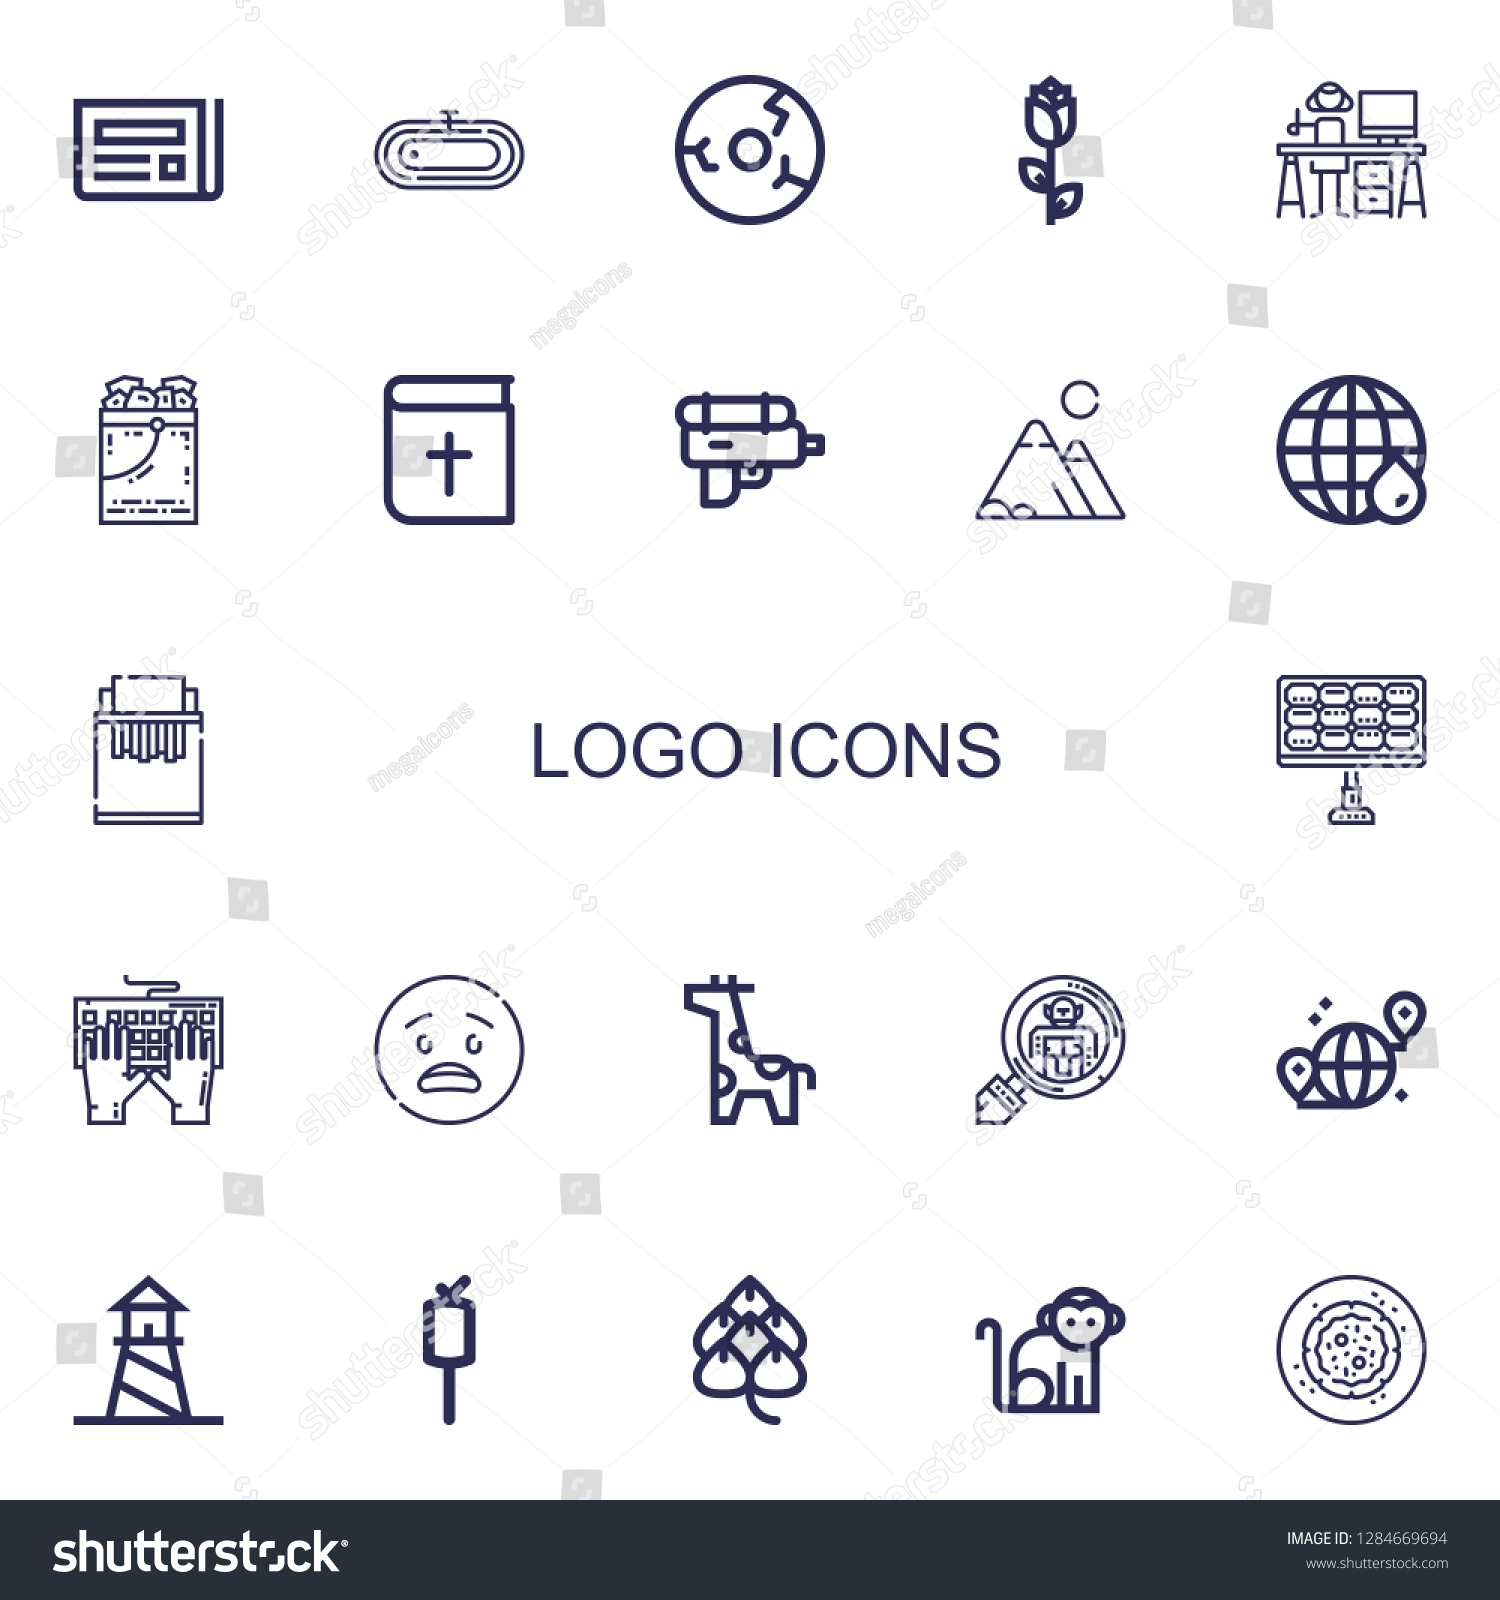 Editable 22 Logo Icons Web Mobile Stock Vector (Royalty Free